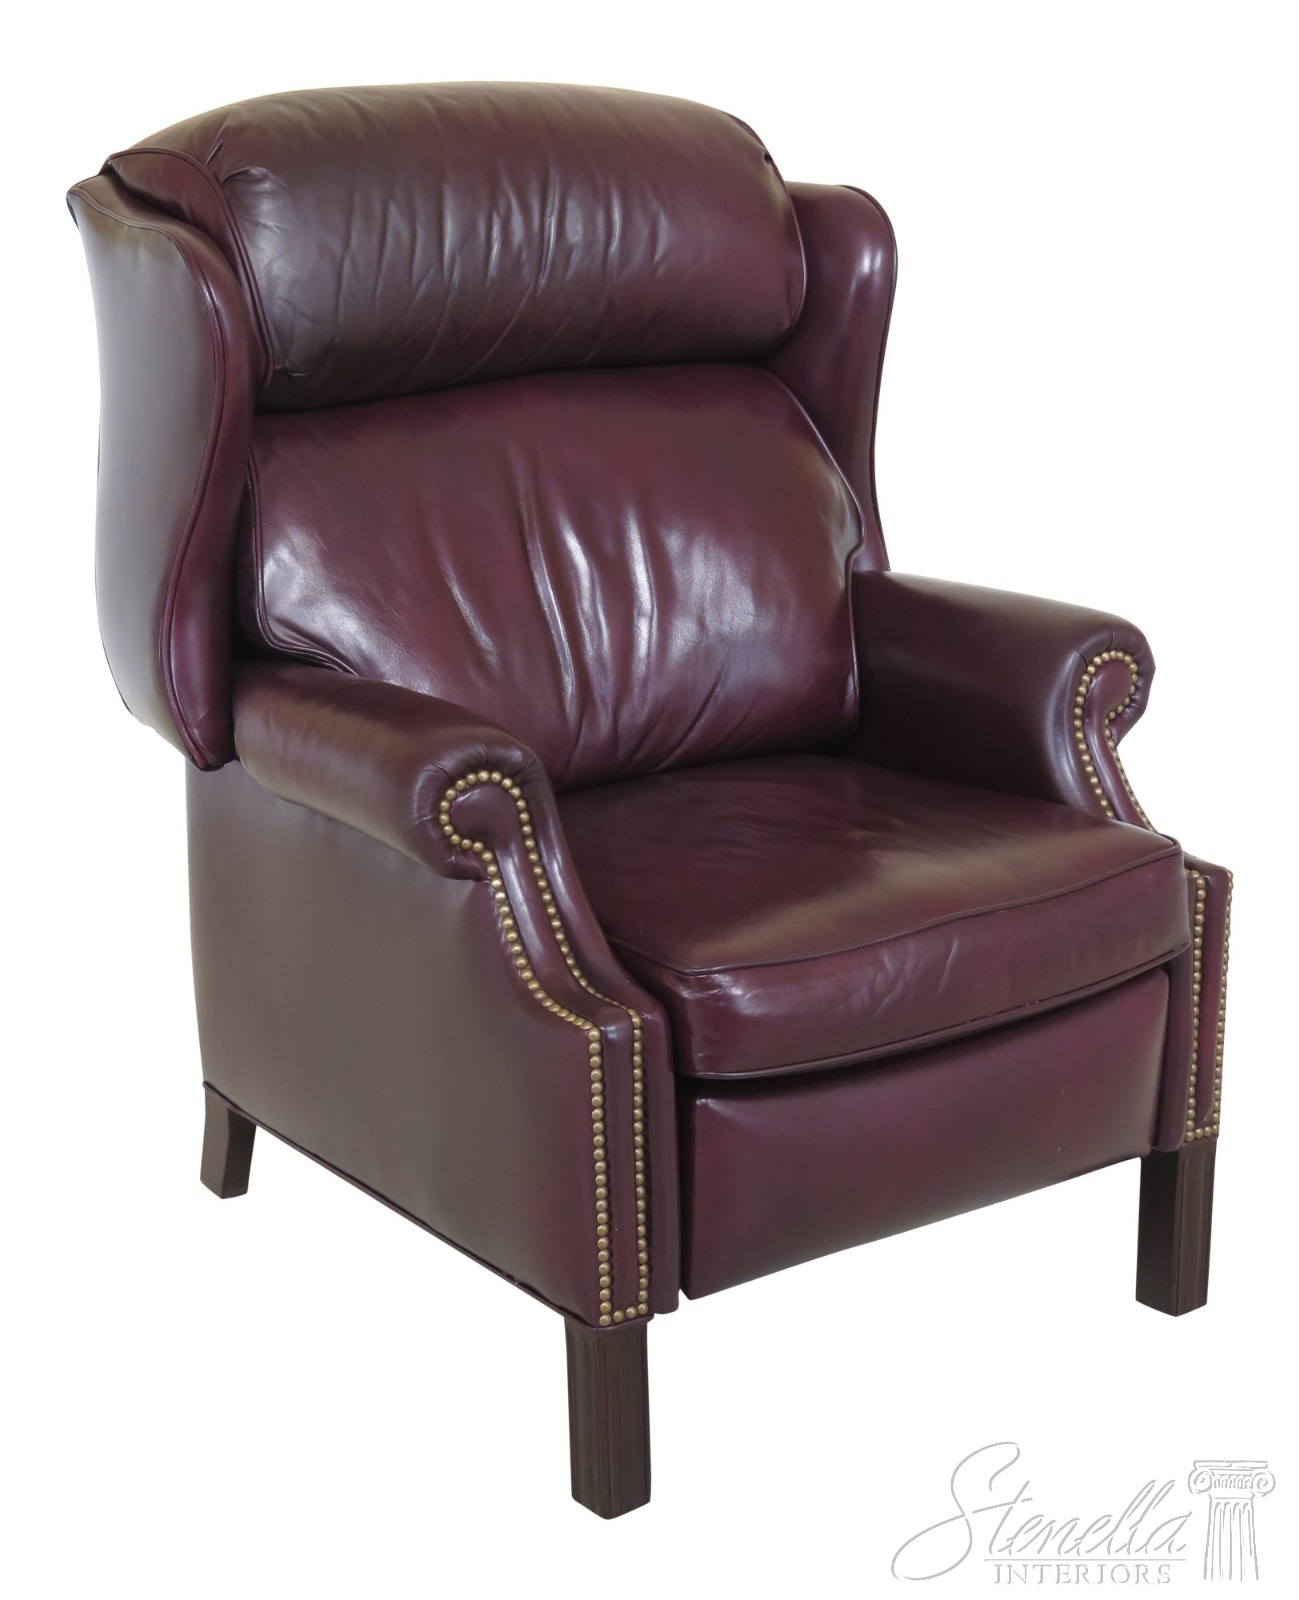 Wingback Recliner Chair Details About 46904ec Hancock Moore Burgundy Leather Wingback Recliner Chair